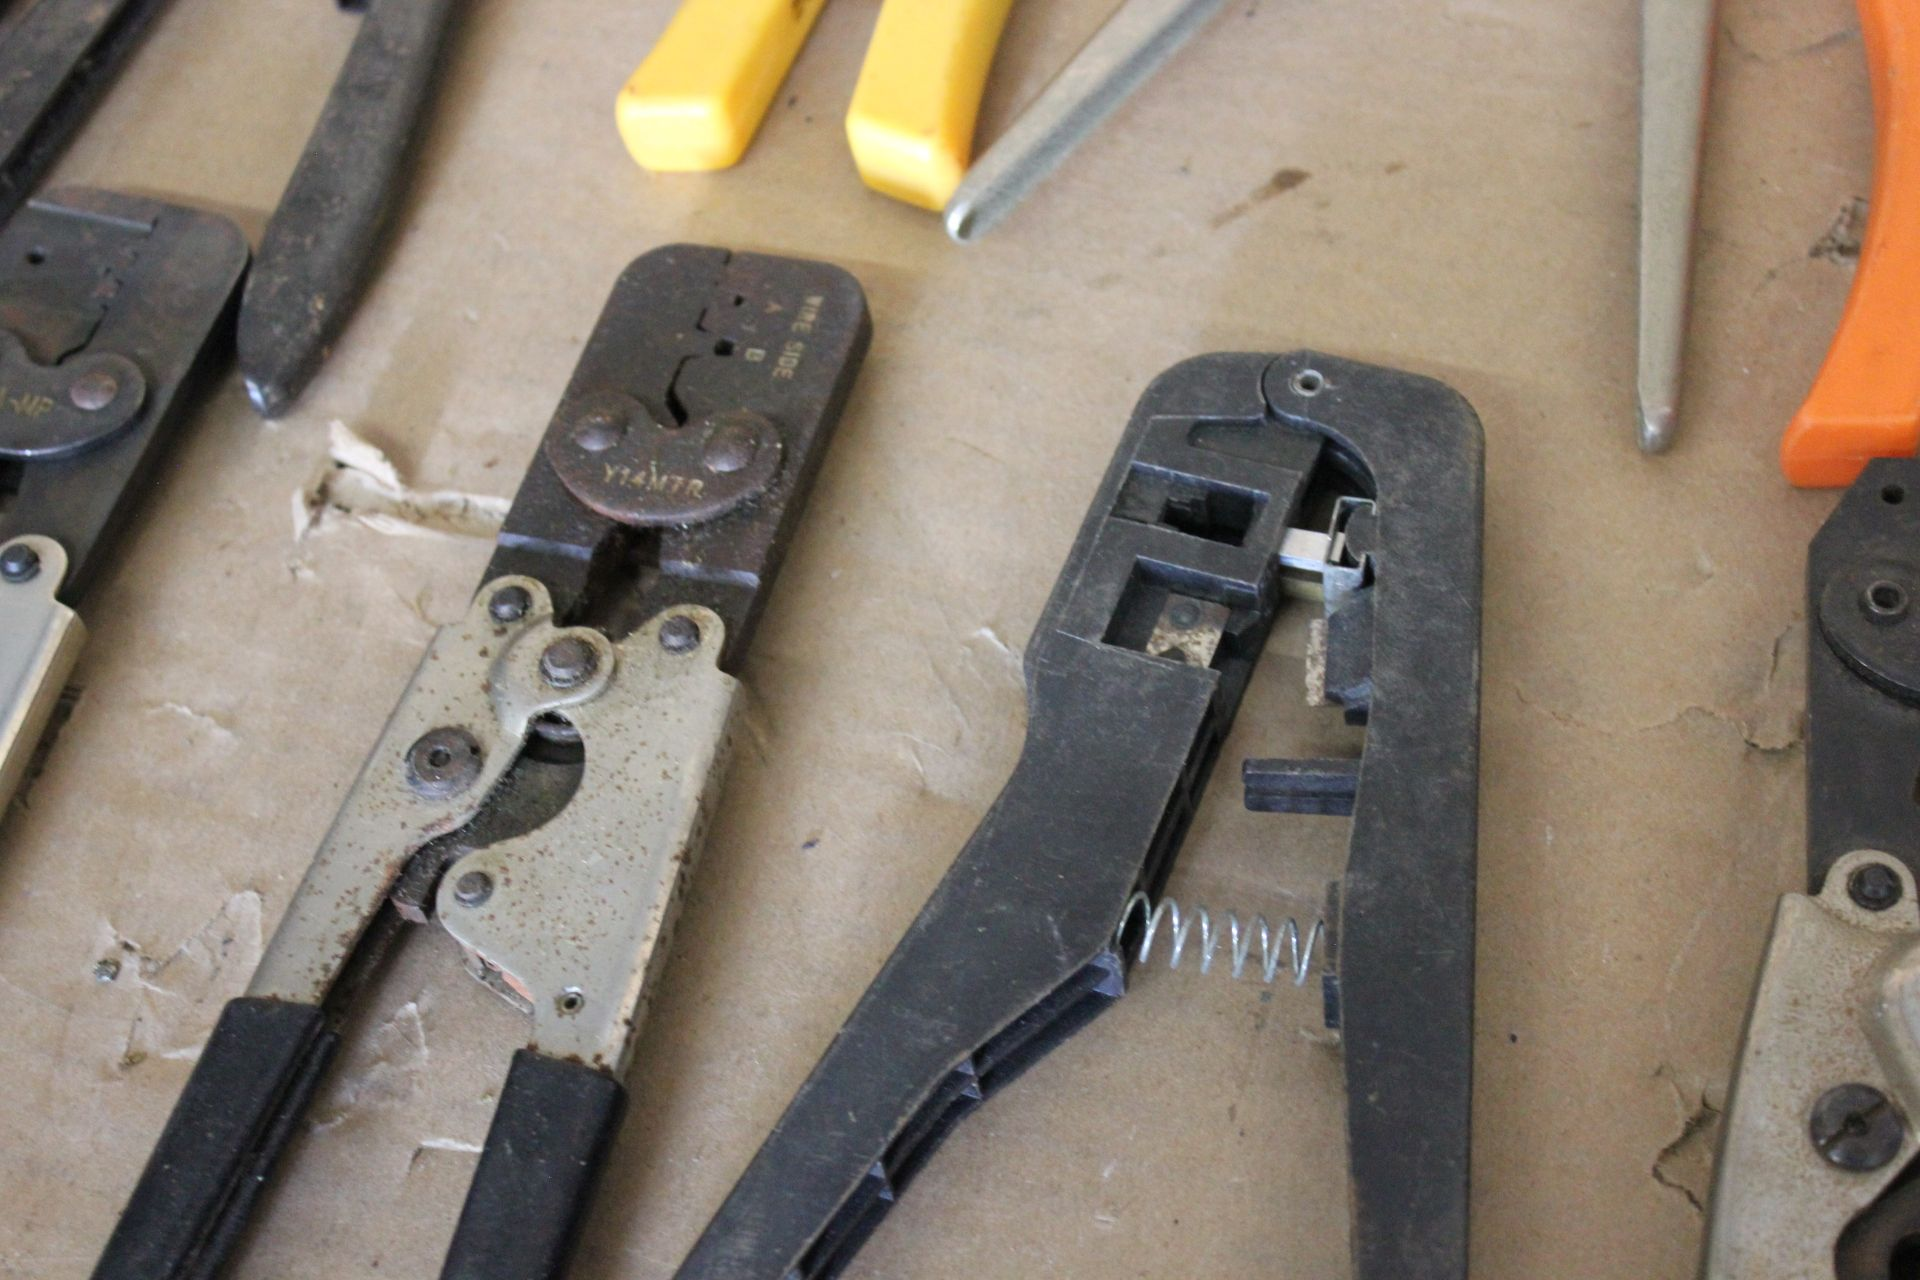 LOT OF HAND CRIMPER TOOLS - Image 7 of 8